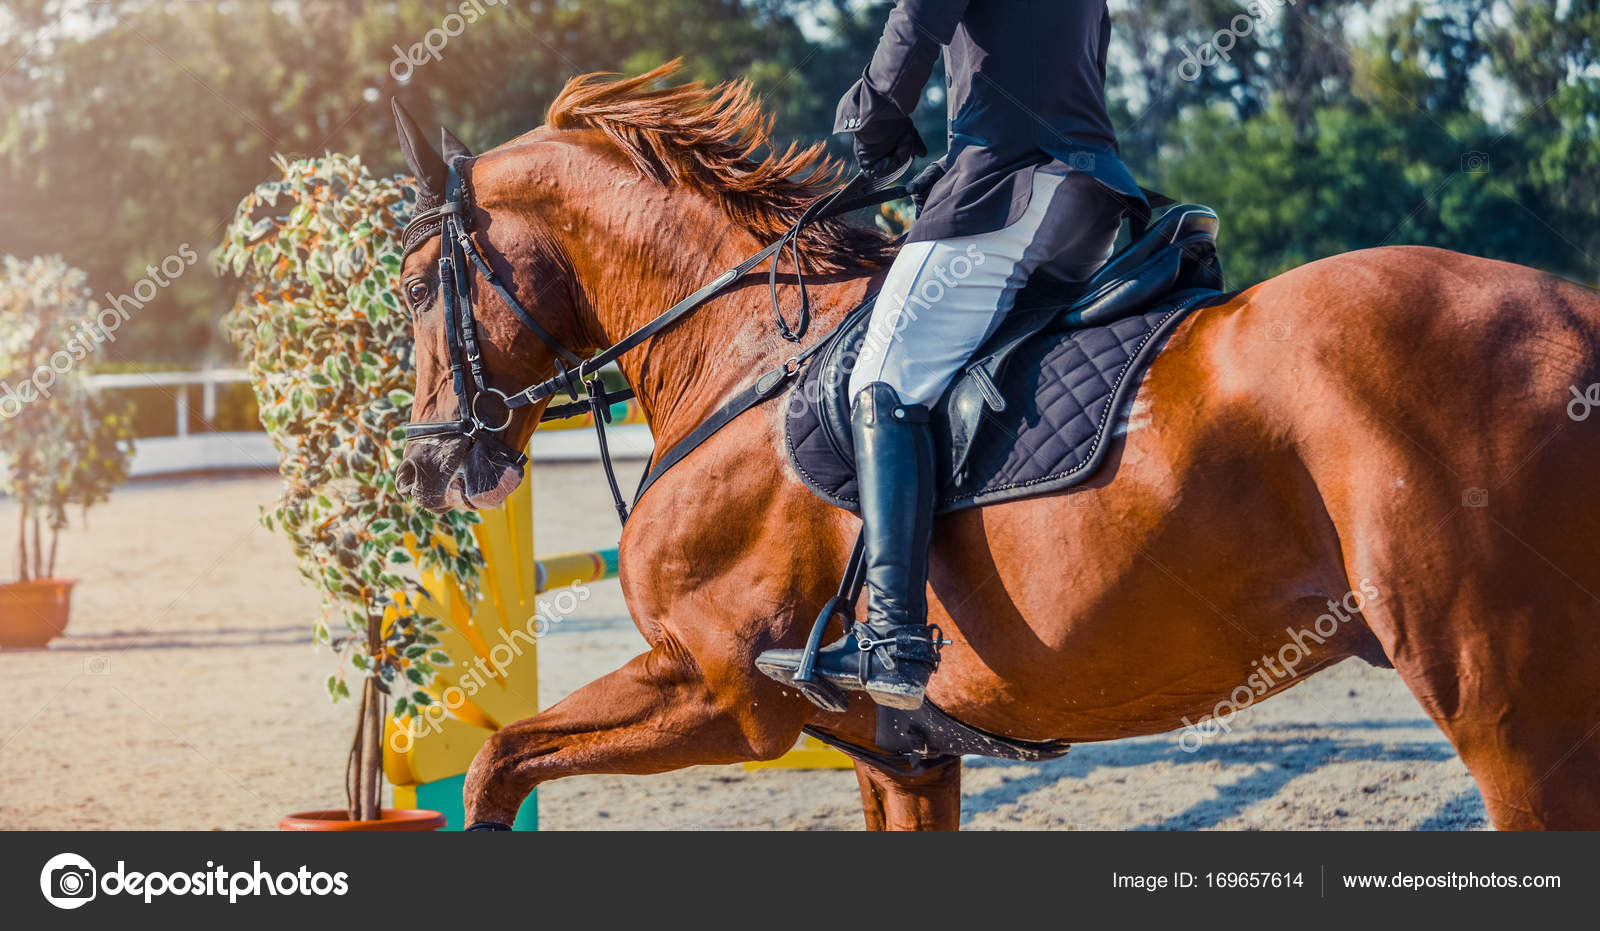 Sorrel Dressage Horse And Rider In Uniform Performing Jump At Show Jumping Competition Equestrian Sport Background Stock Photo C Martanovak 169657614